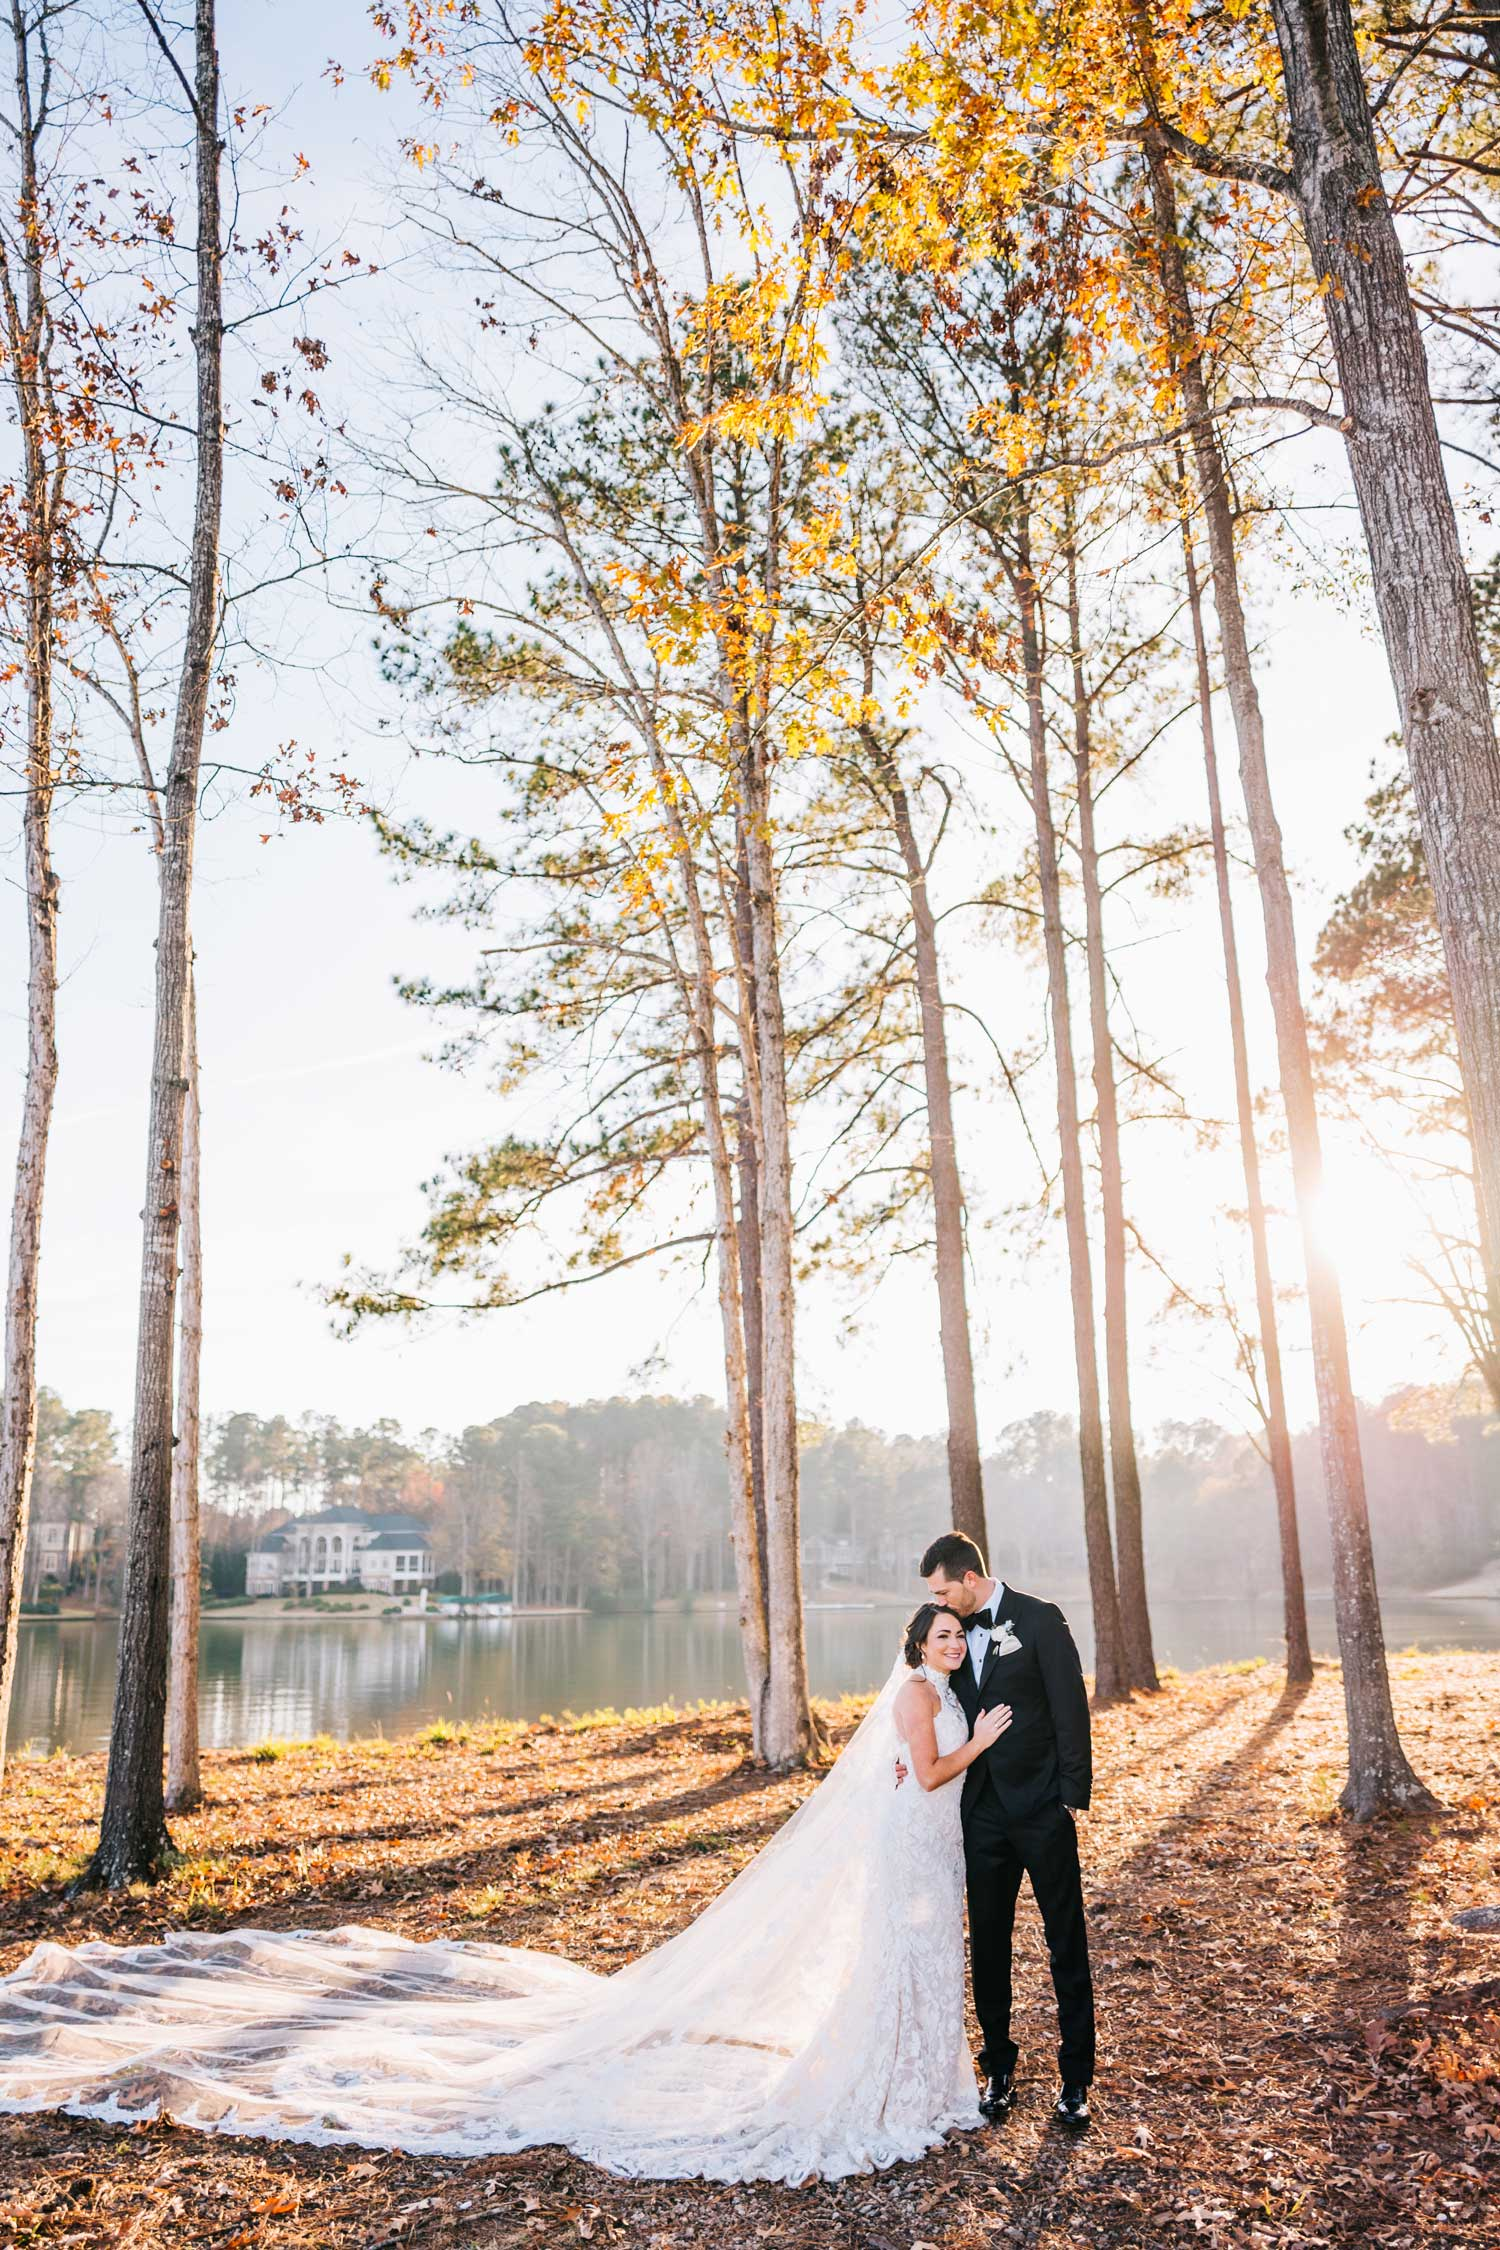 bride and groom portrait in woods of small town venue location